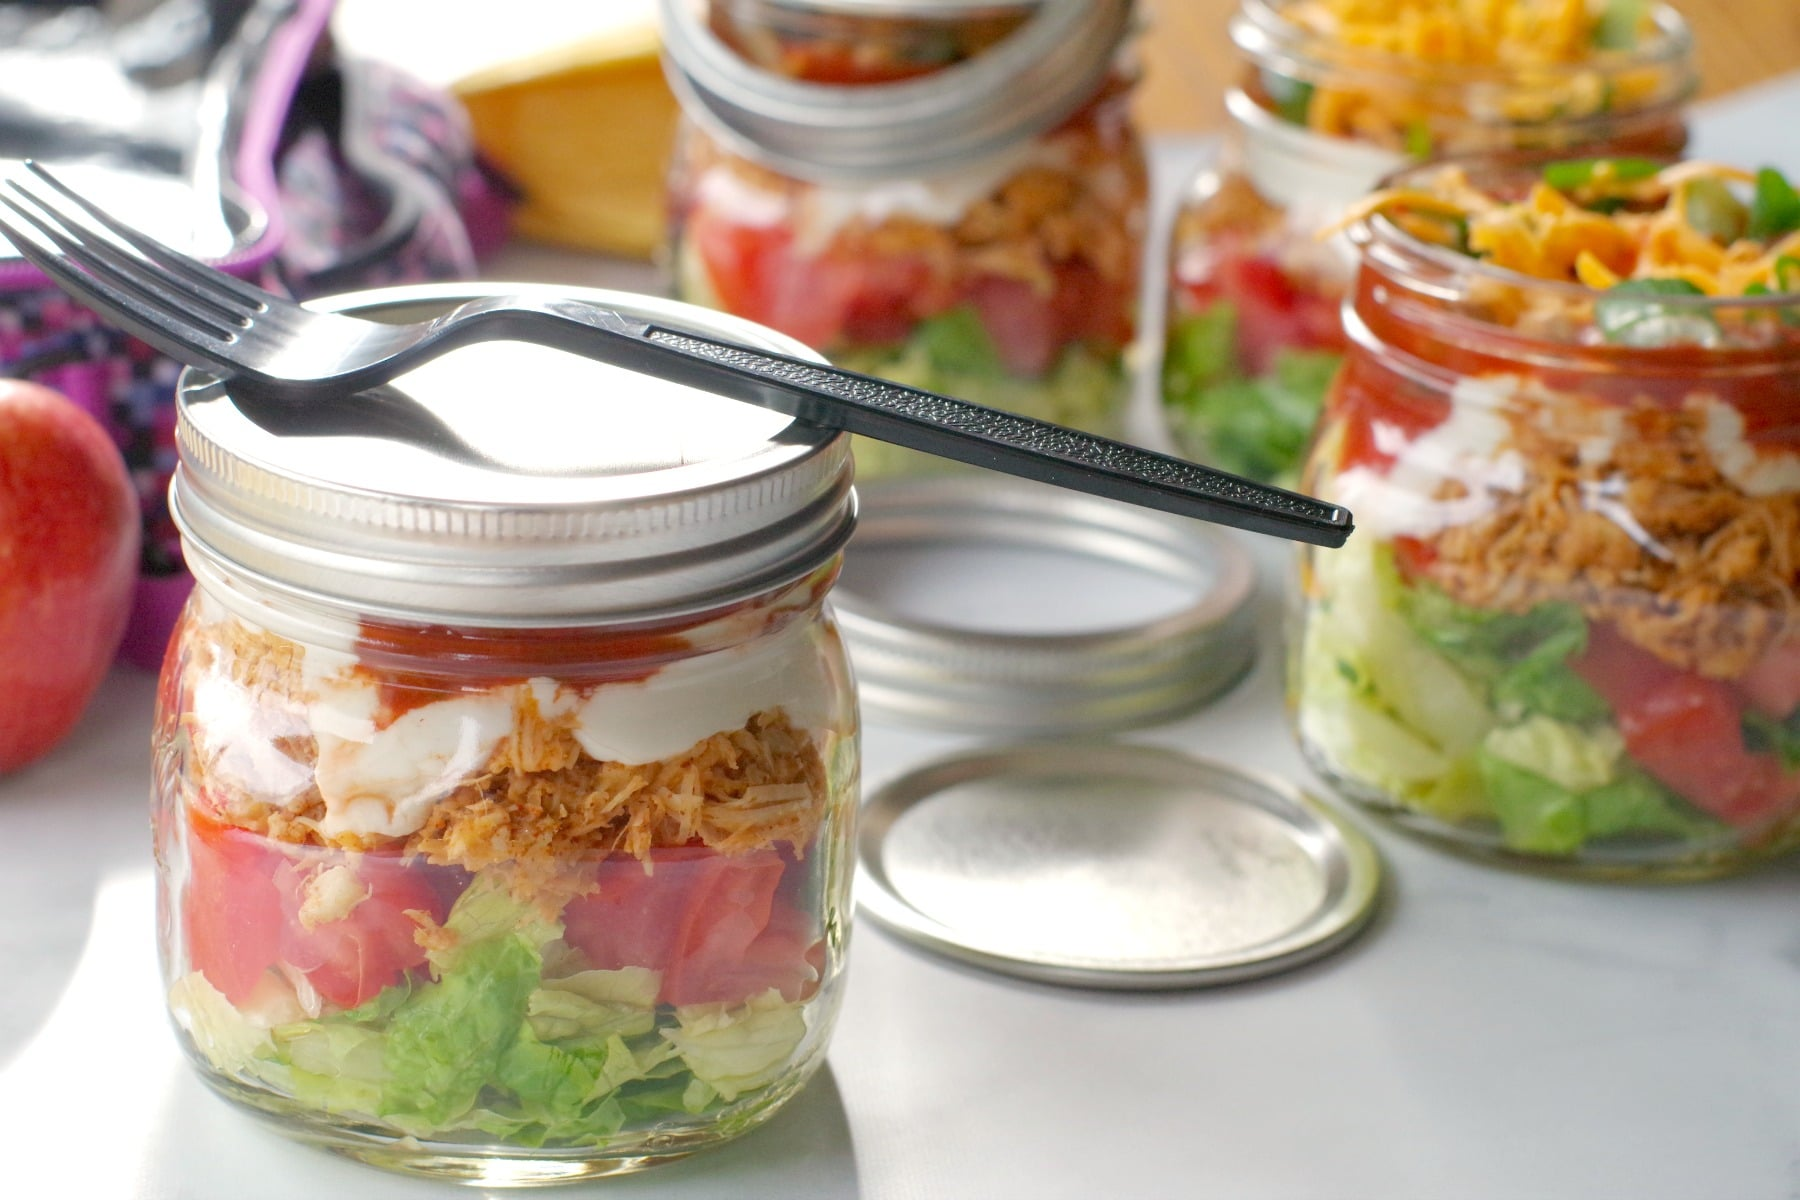 chicken taco salad in a mason jar with lid on and more jars in background